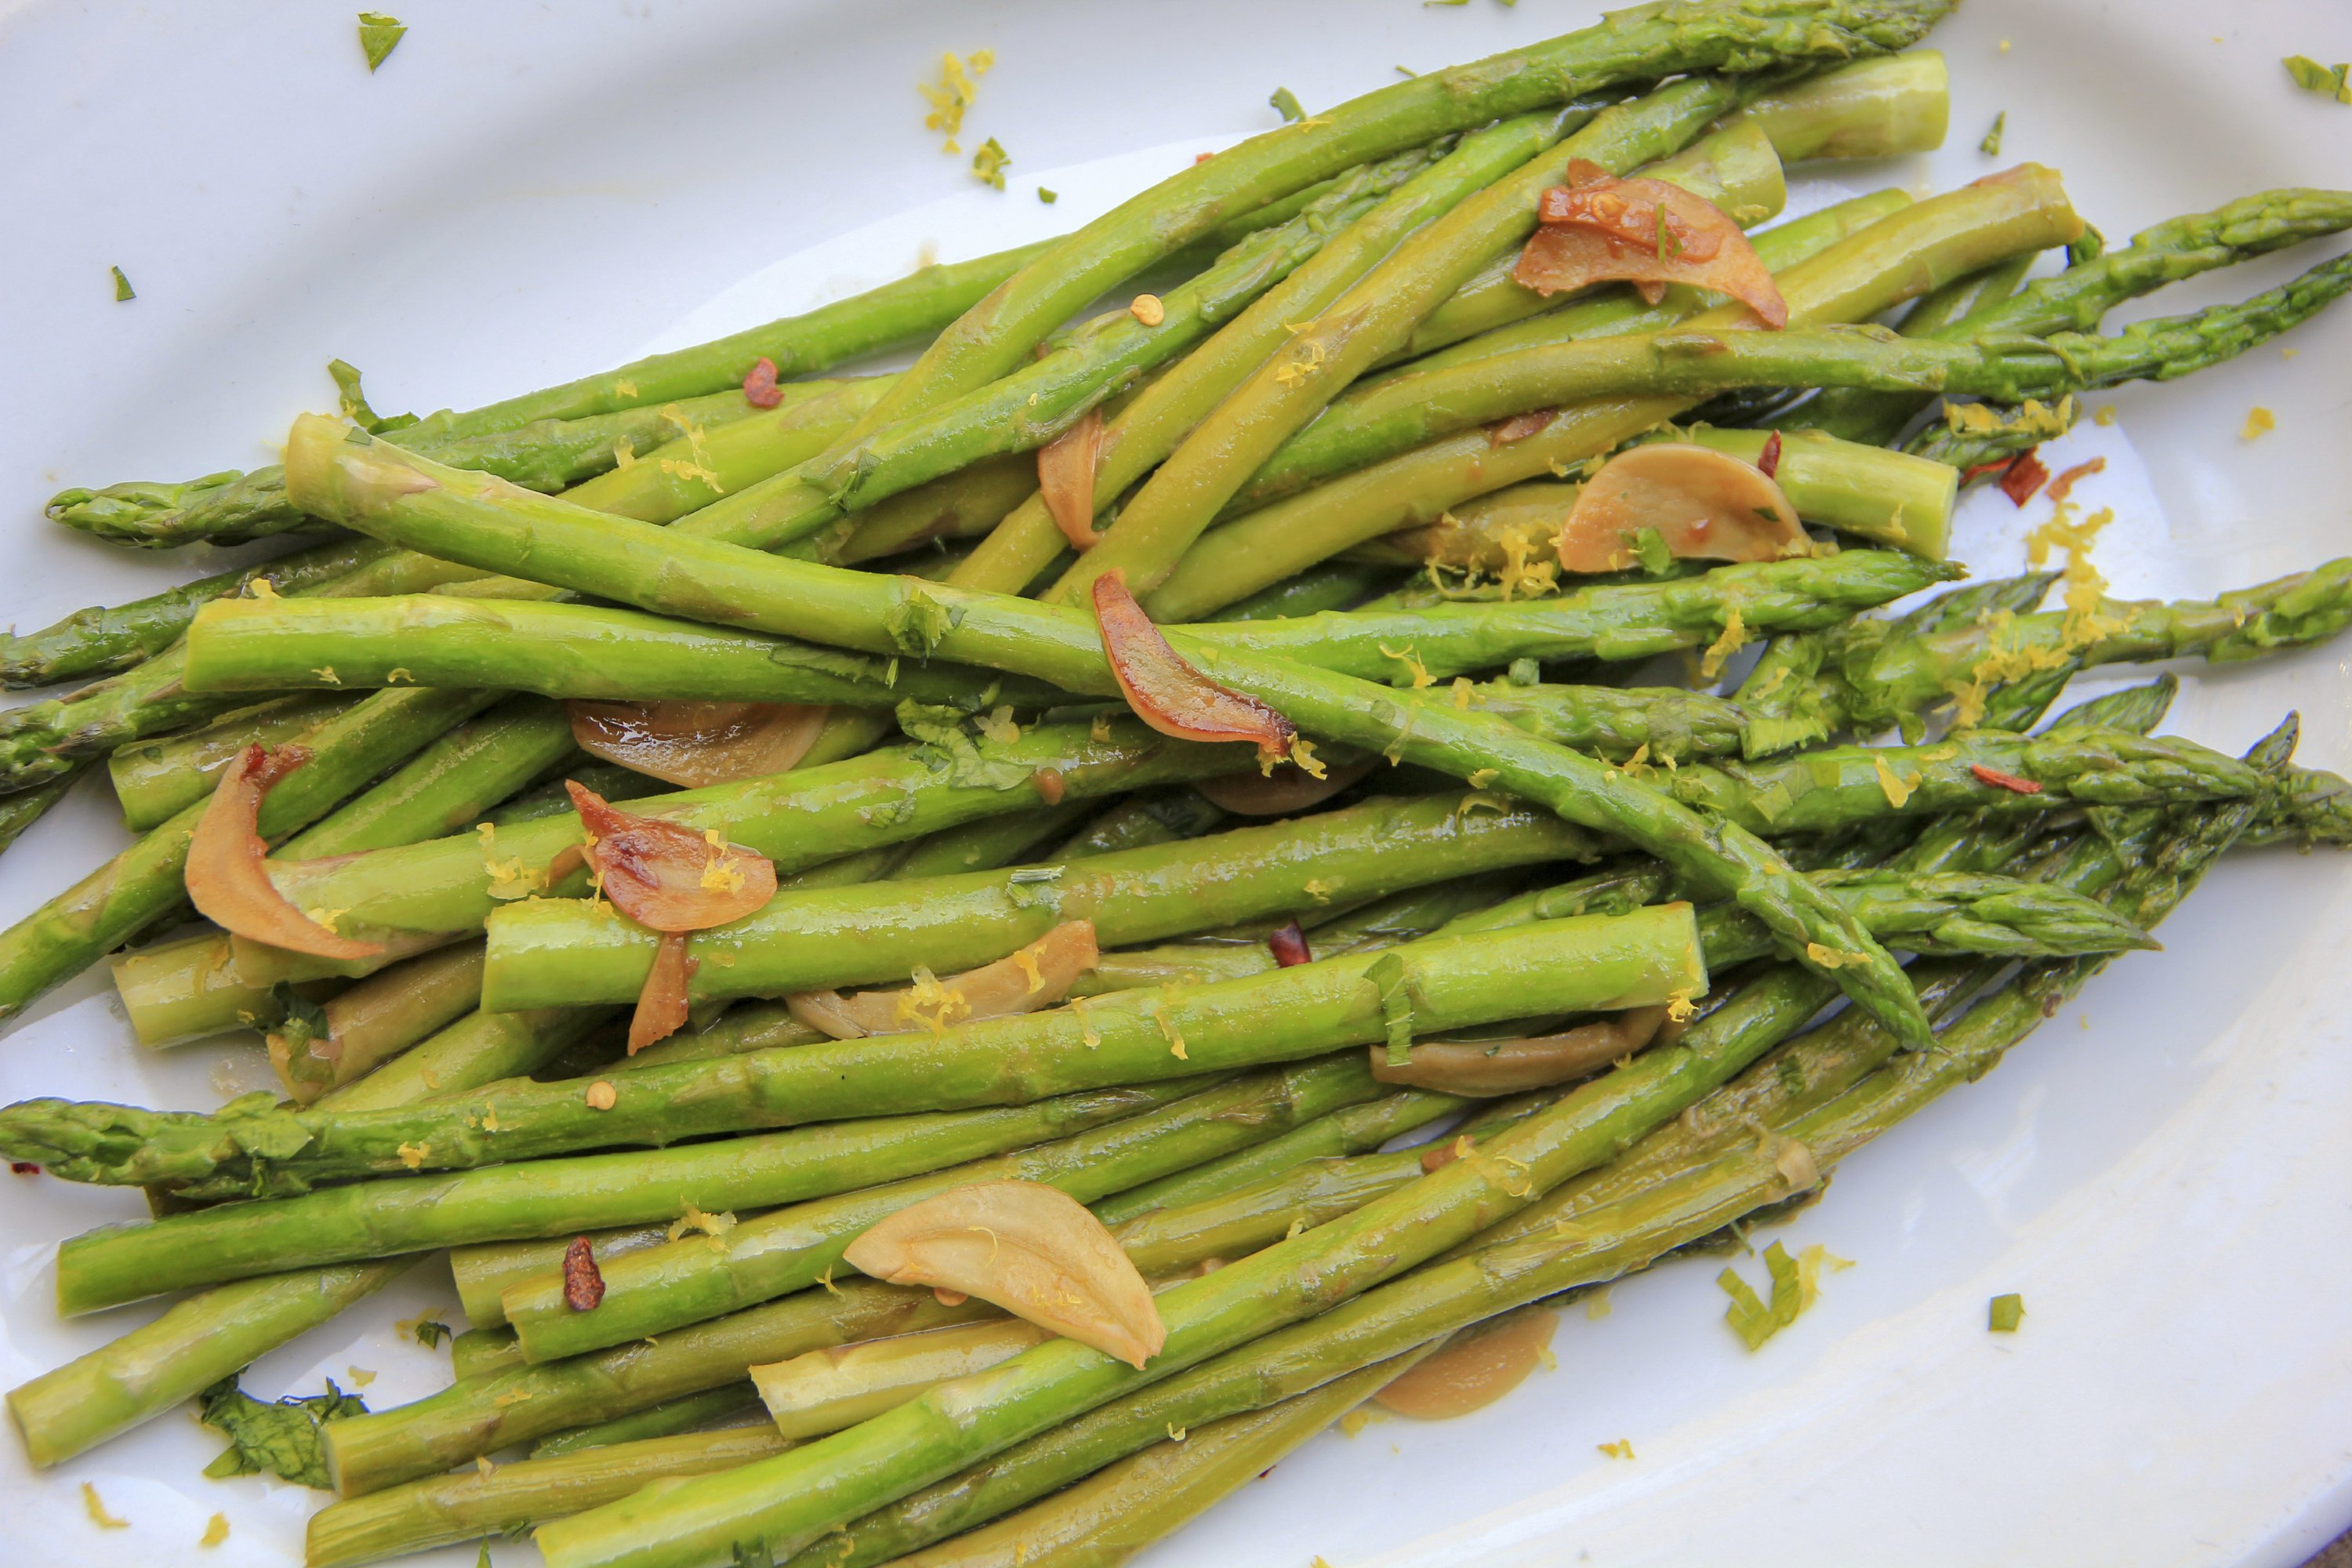 How to make asparagus sing? Mustard, soy sauce and honey